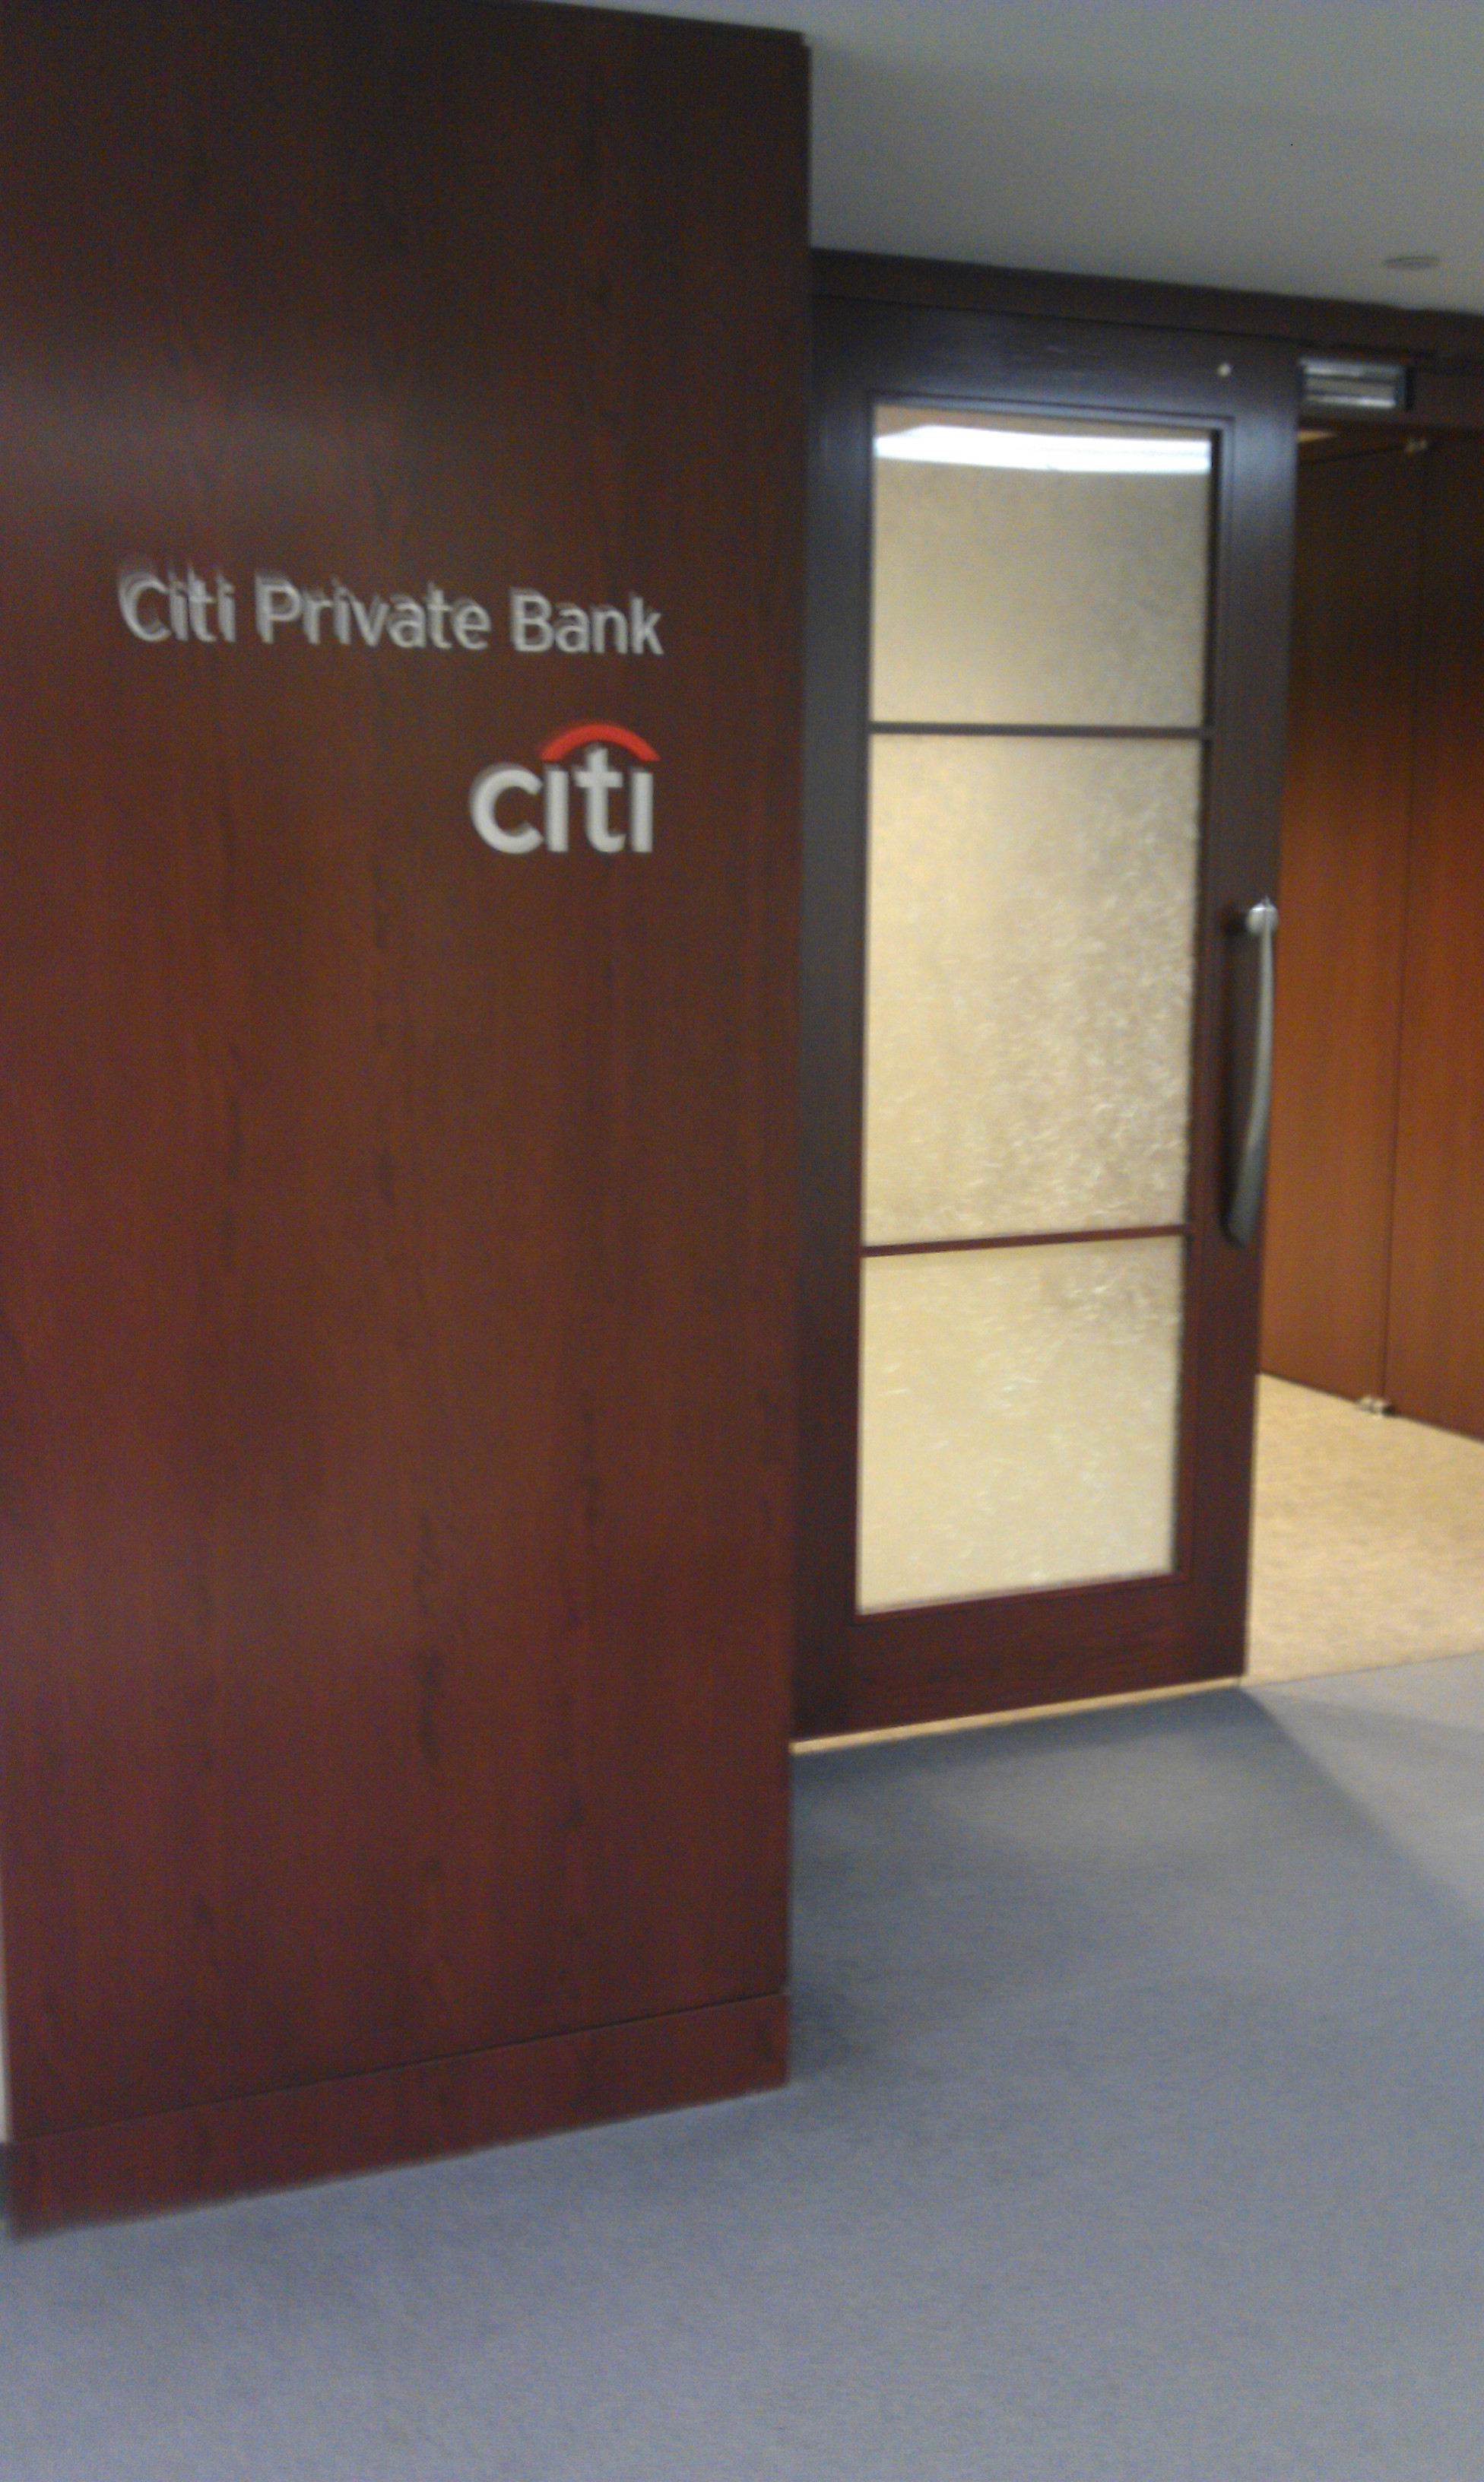 Citigroup wikipedia a citi private bank office reheart Gallery